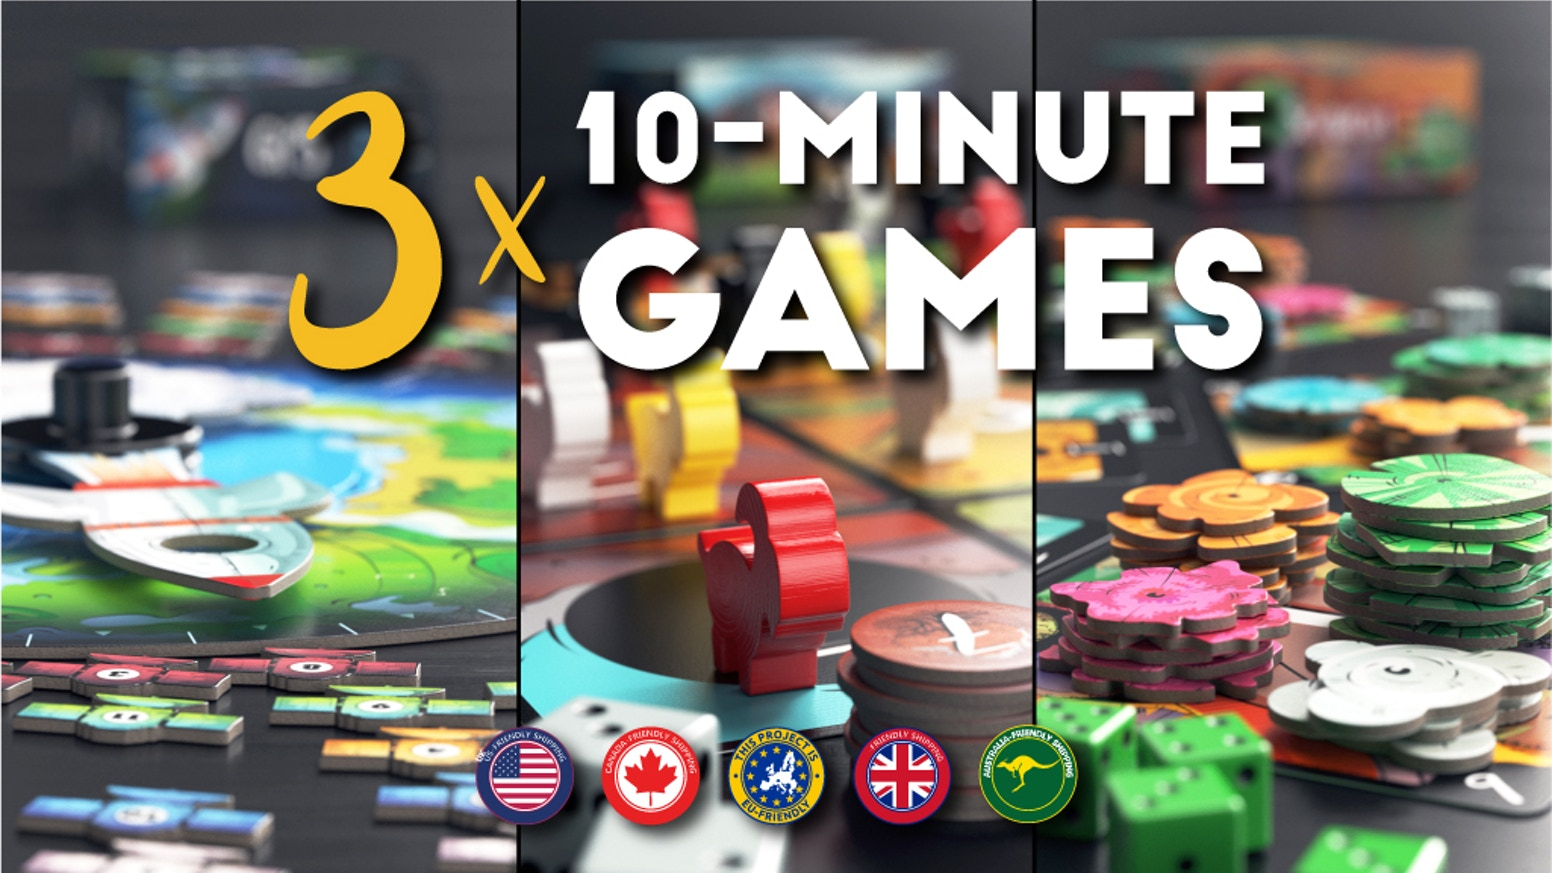 Three Small, 10-Minute Board Games